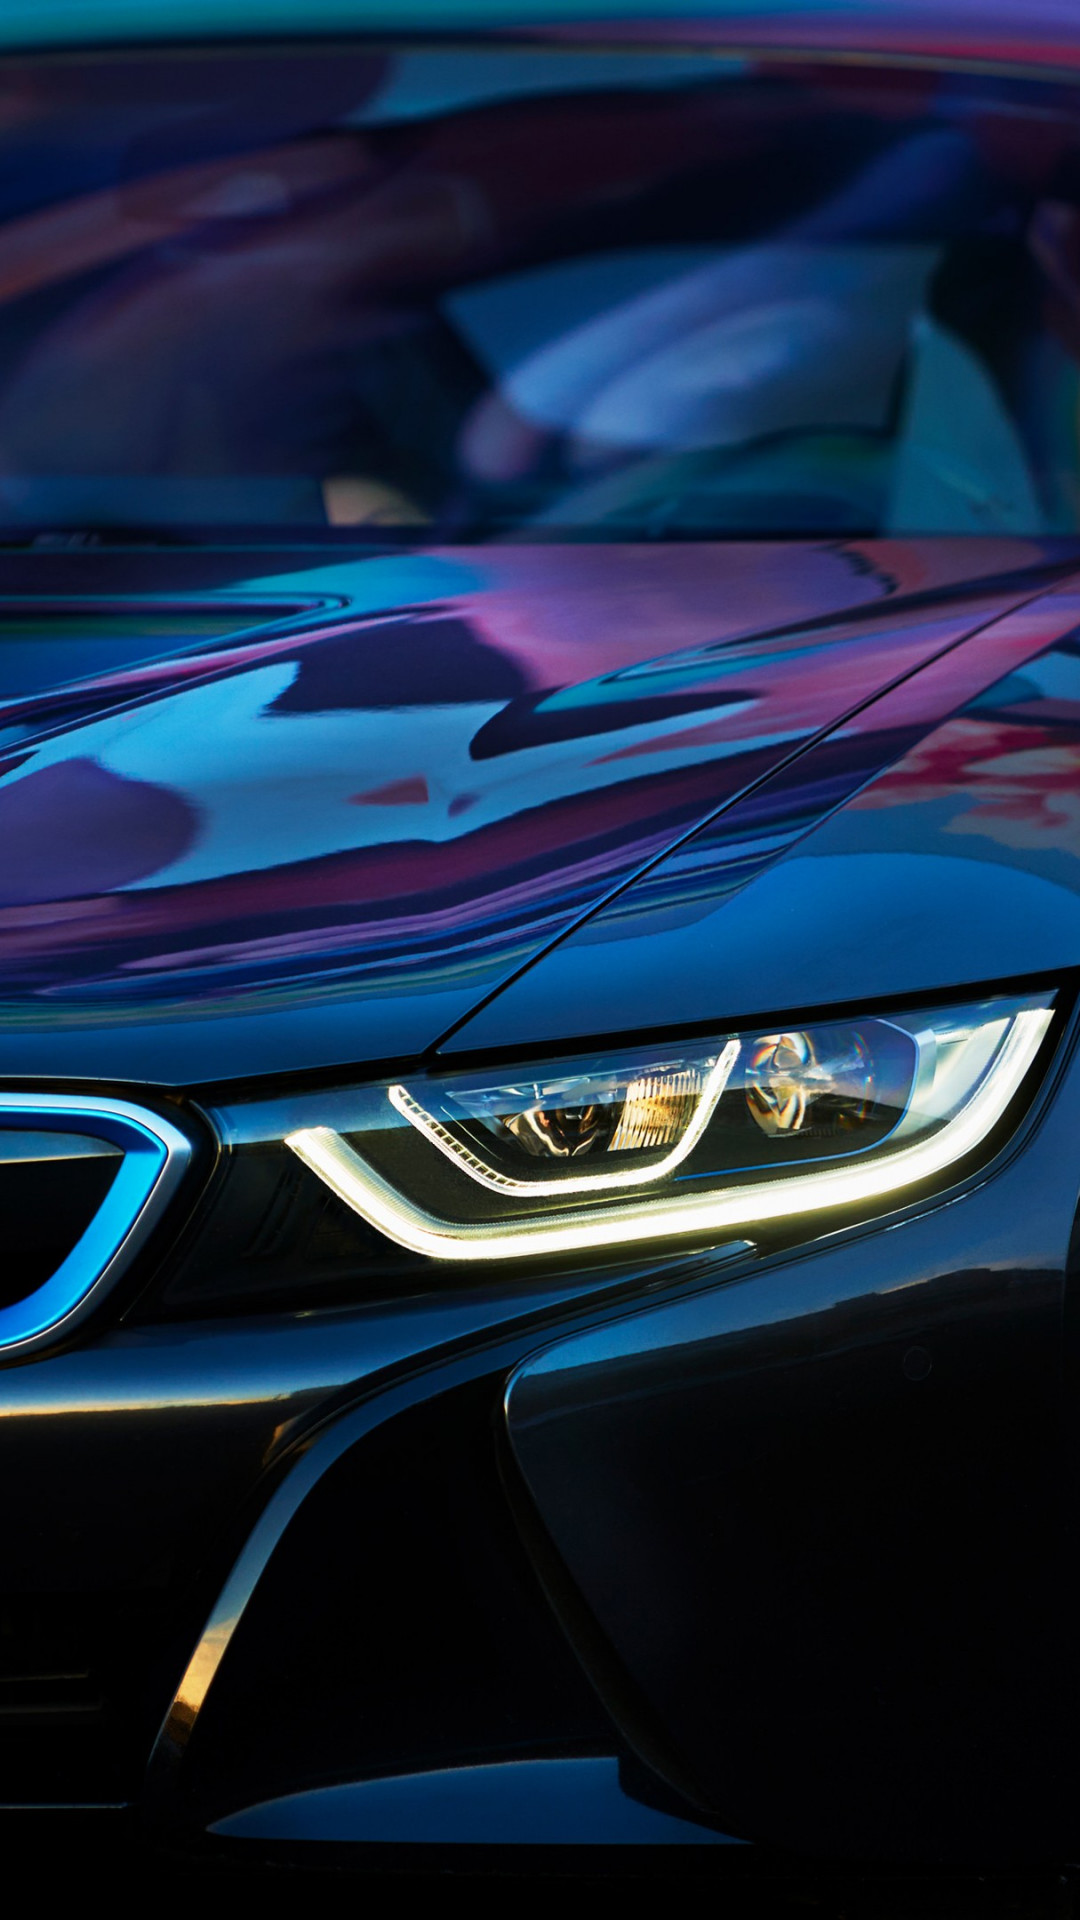 The Best Car Wallpapers Hd Download Wallpaper Bmw I8 1080x1920